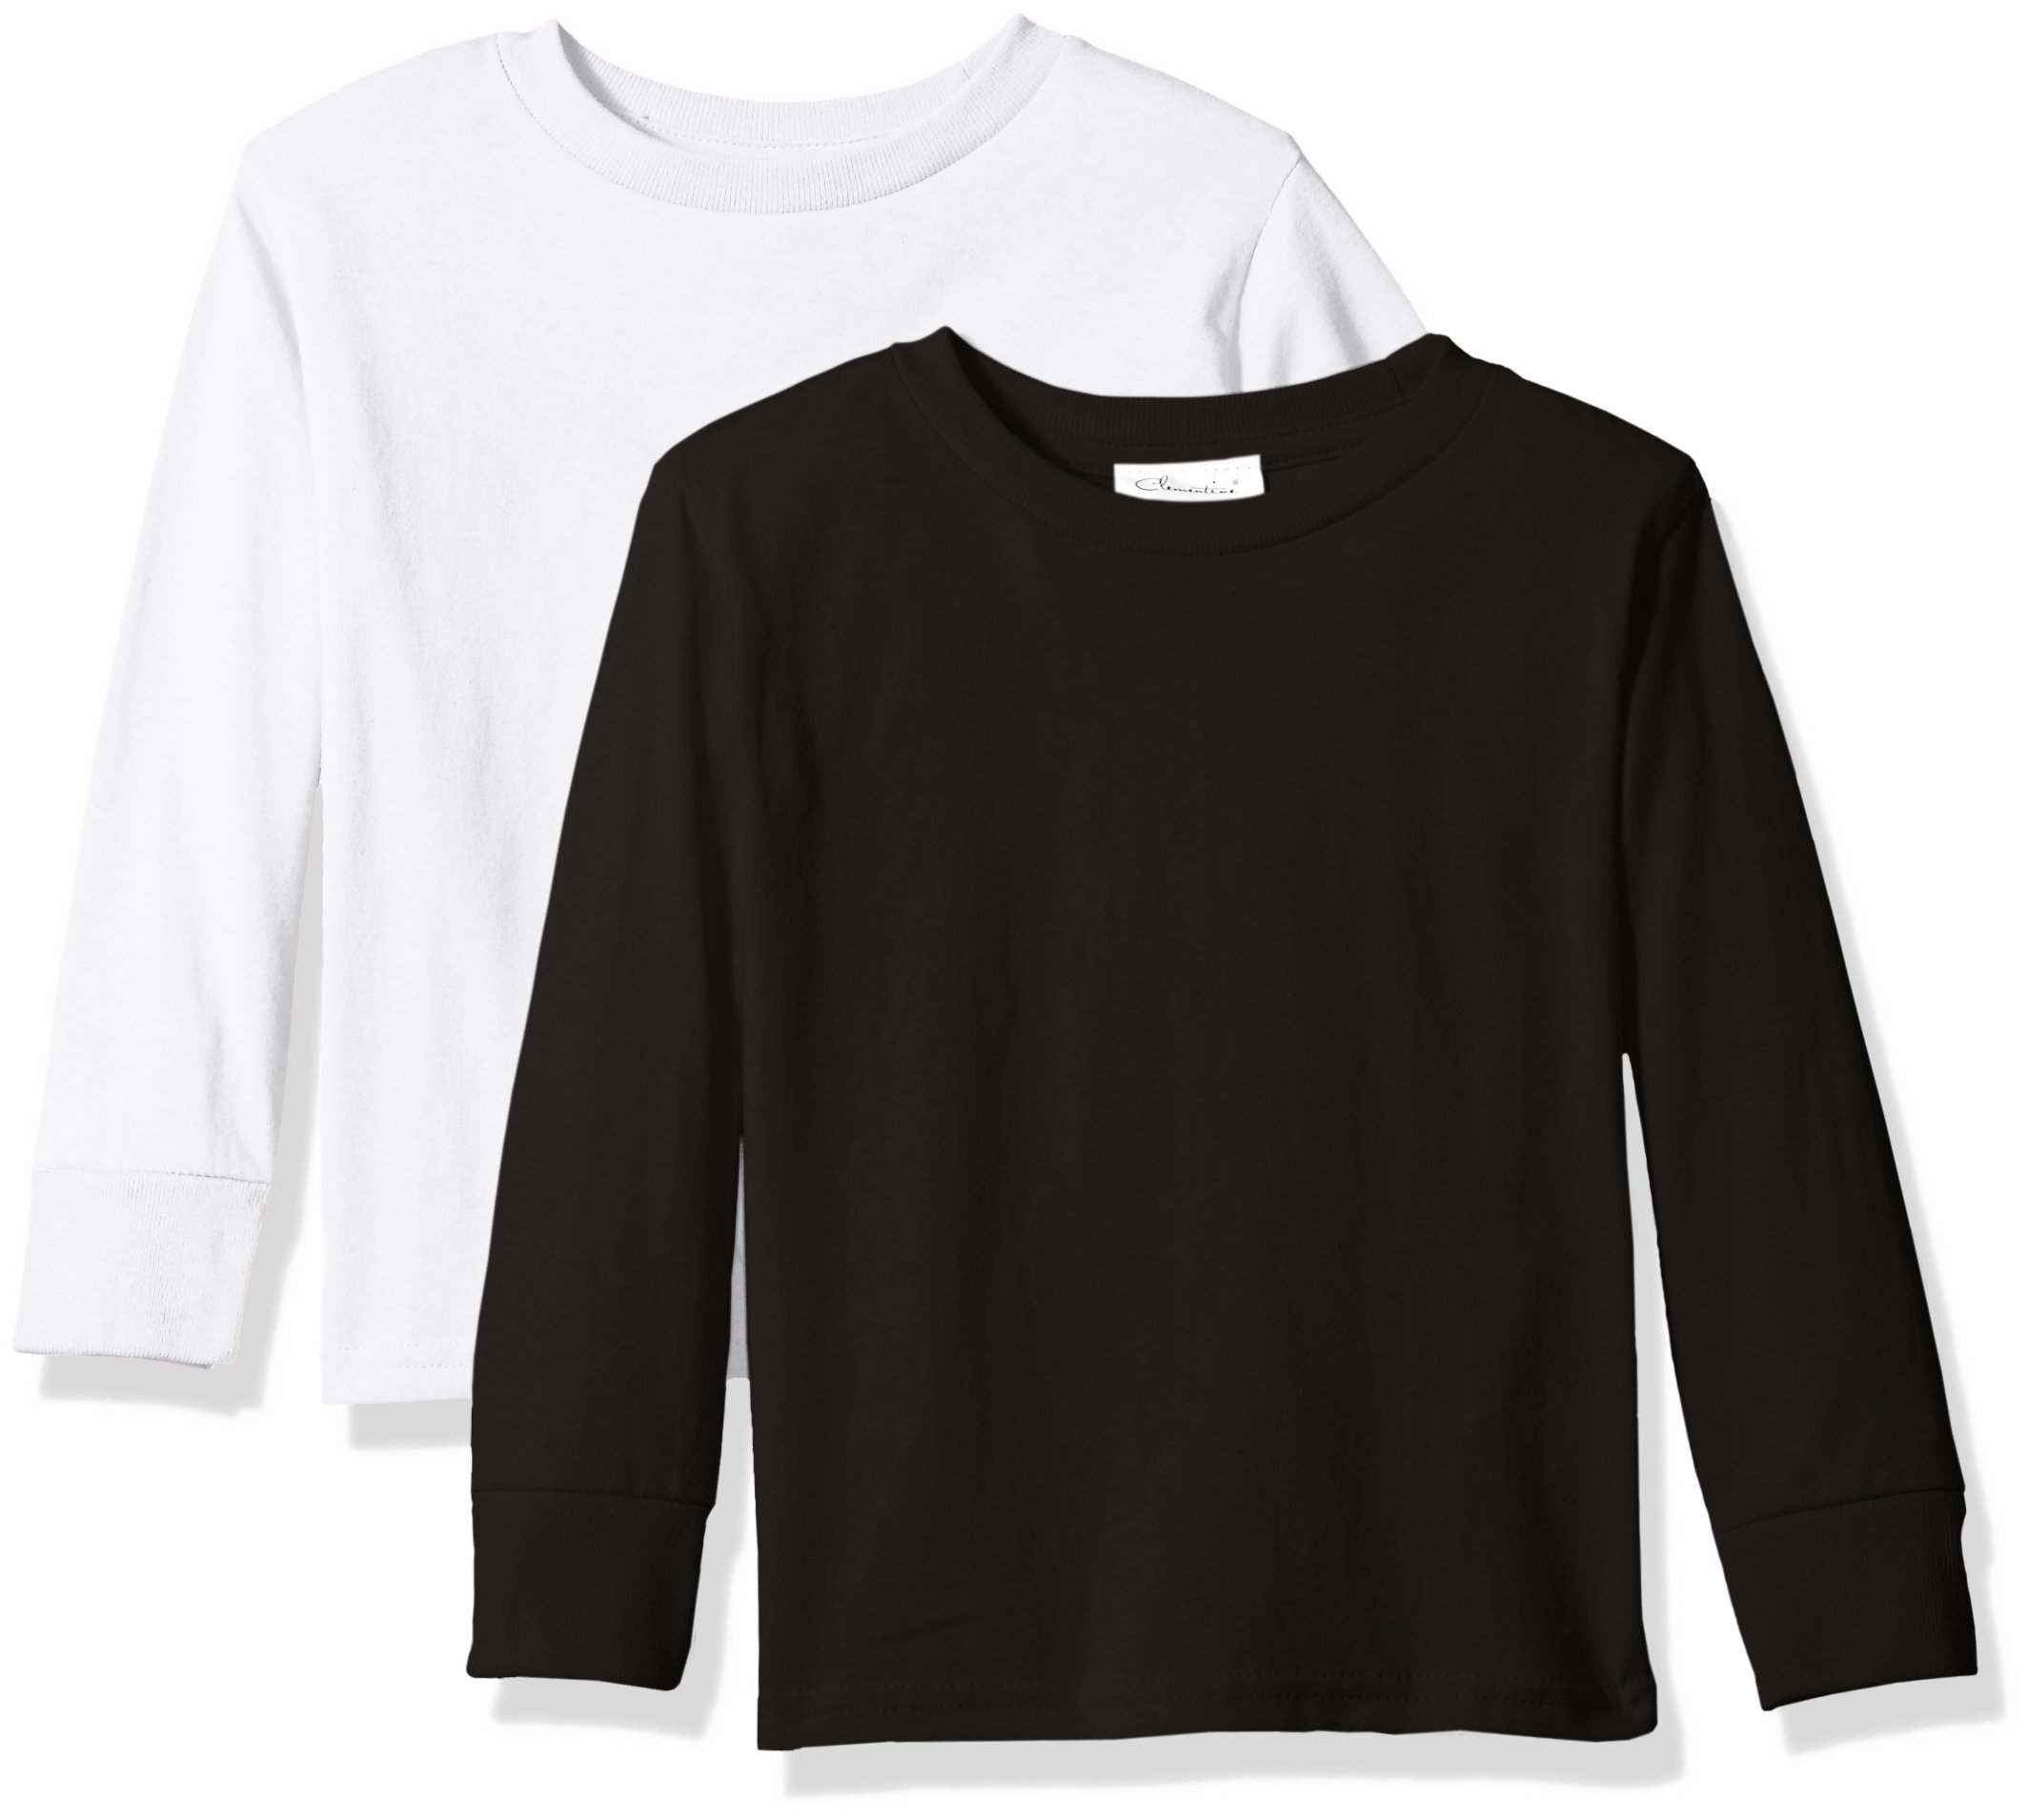 Clementine Baby Girls' Little Boys' Everyday Toddler Long Sleeve T-Shirts Crew 2-Pack, Black/White, 2T